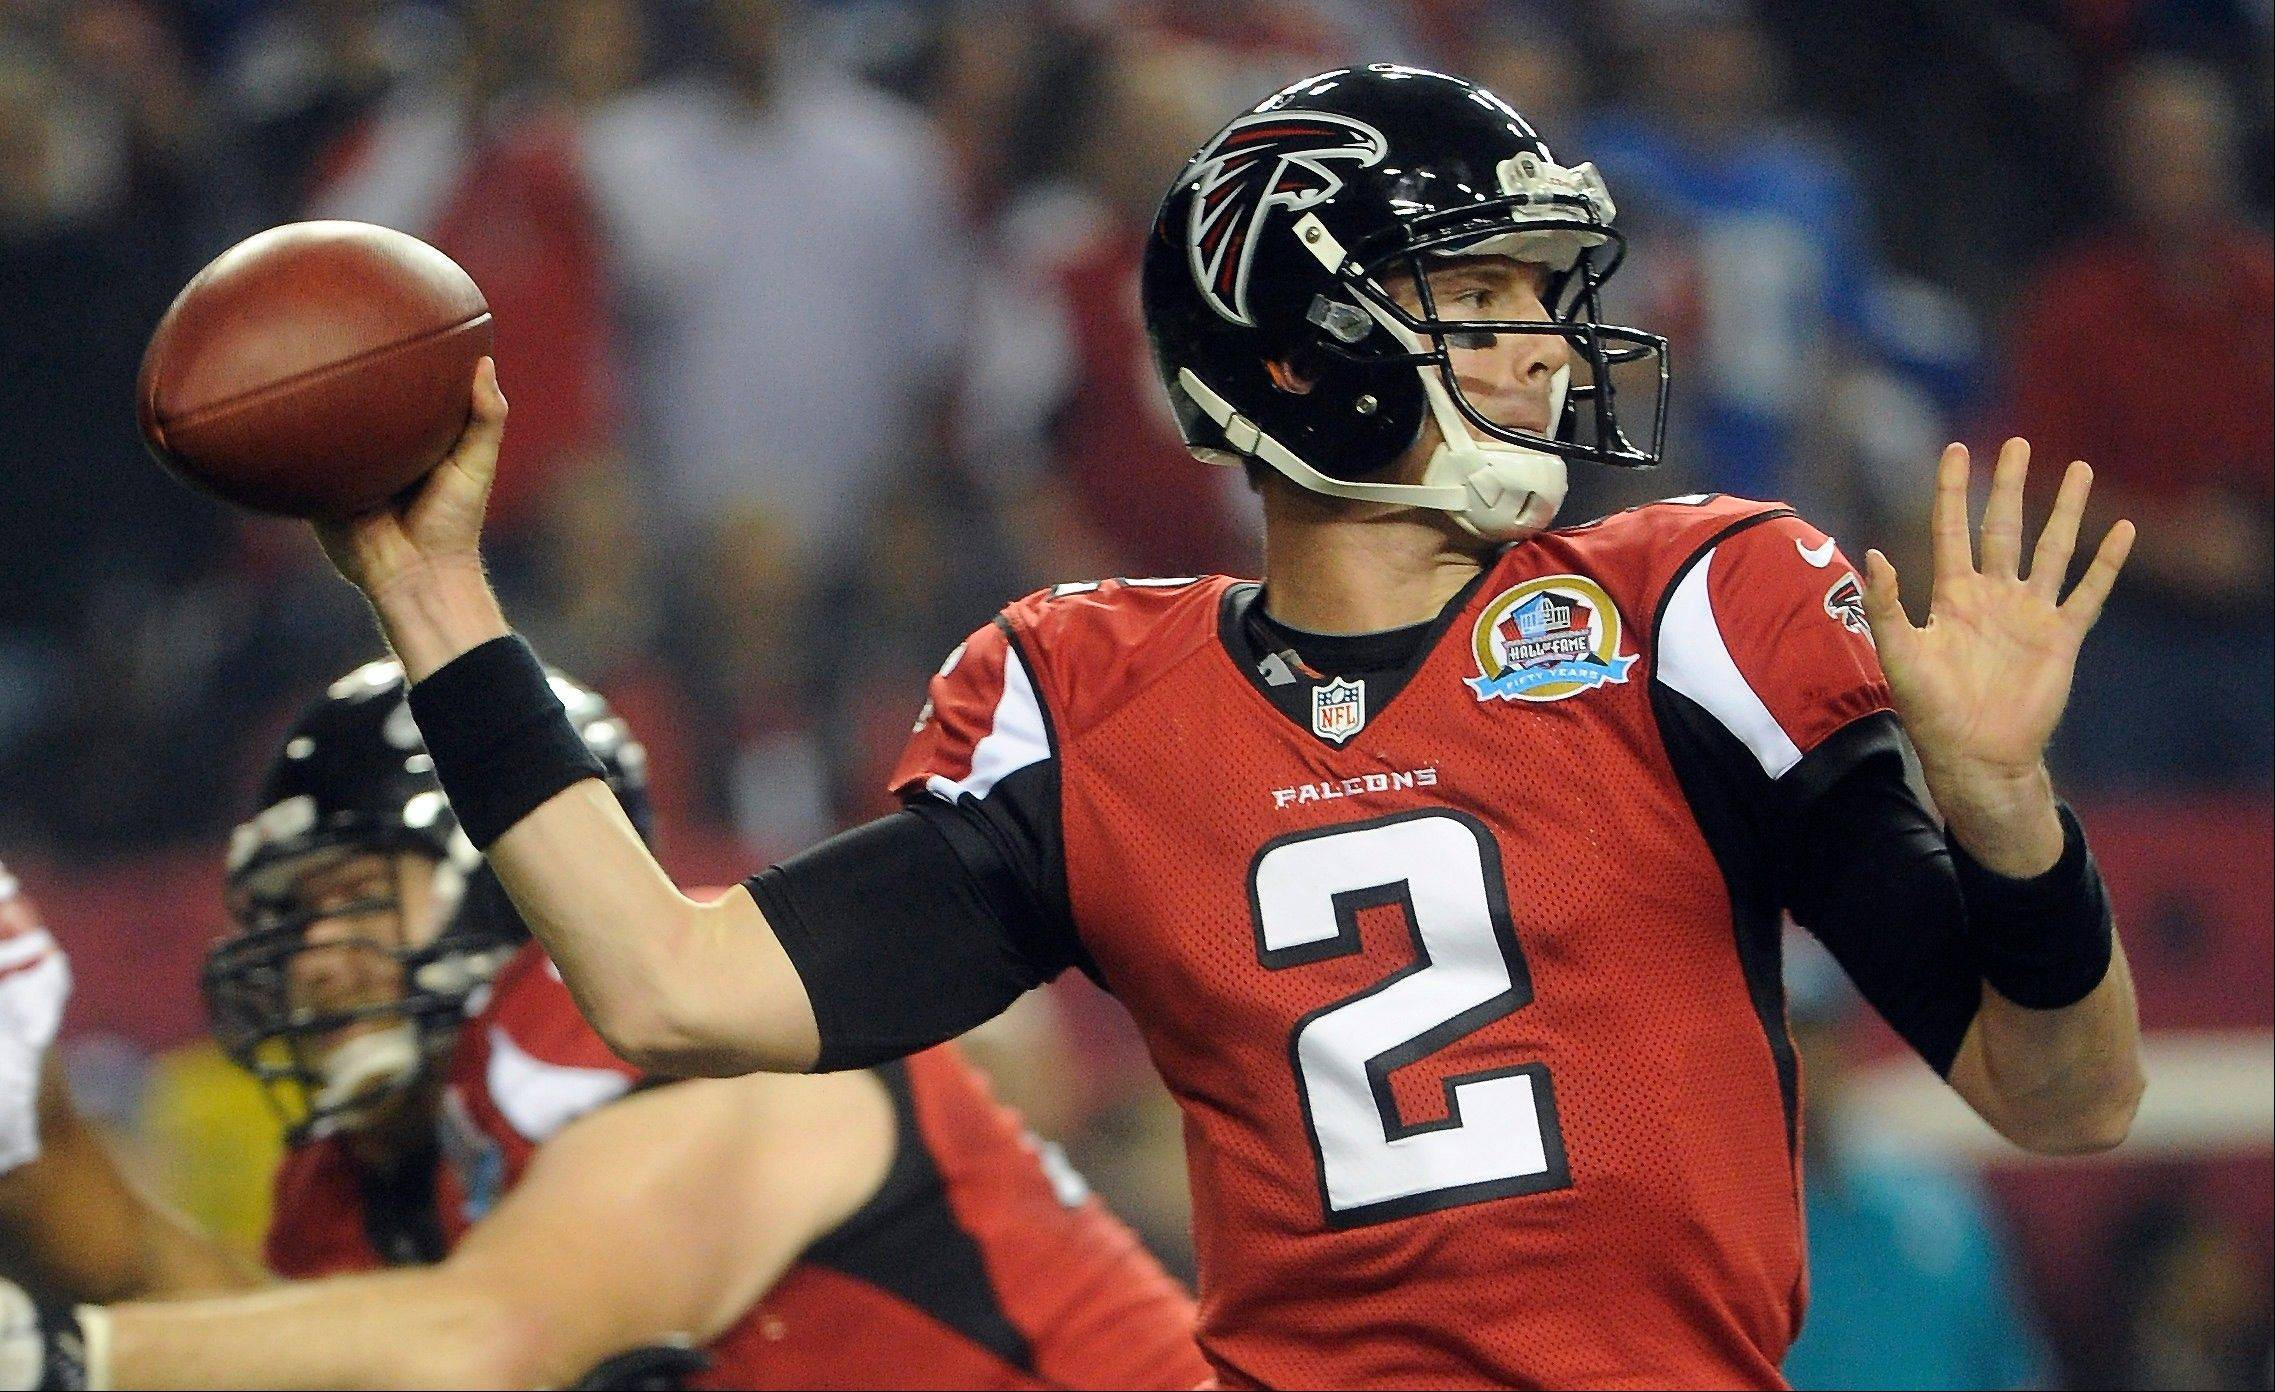 Atlanta Falcons quarterback Matt Ryan (2) works during the first half against New York Giants, Sunday in Atlanta.